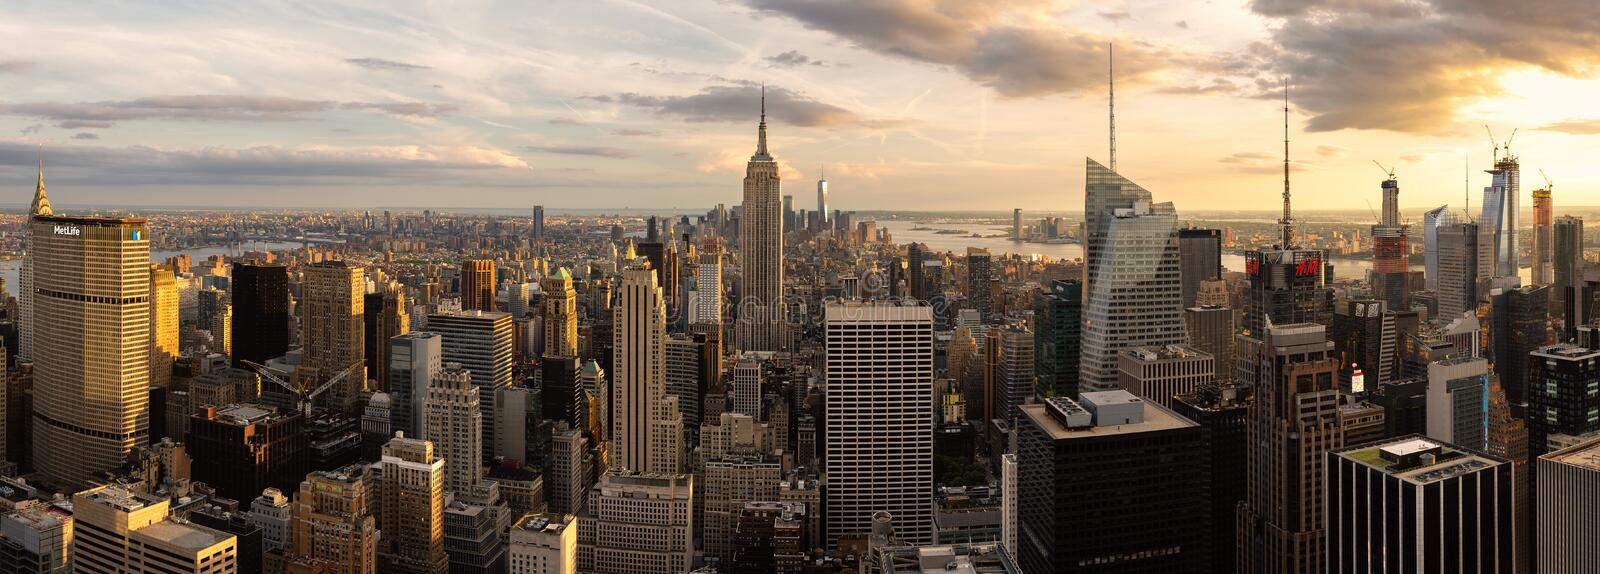 Panorama av Empire State Building och New York City horisont arkivfoto